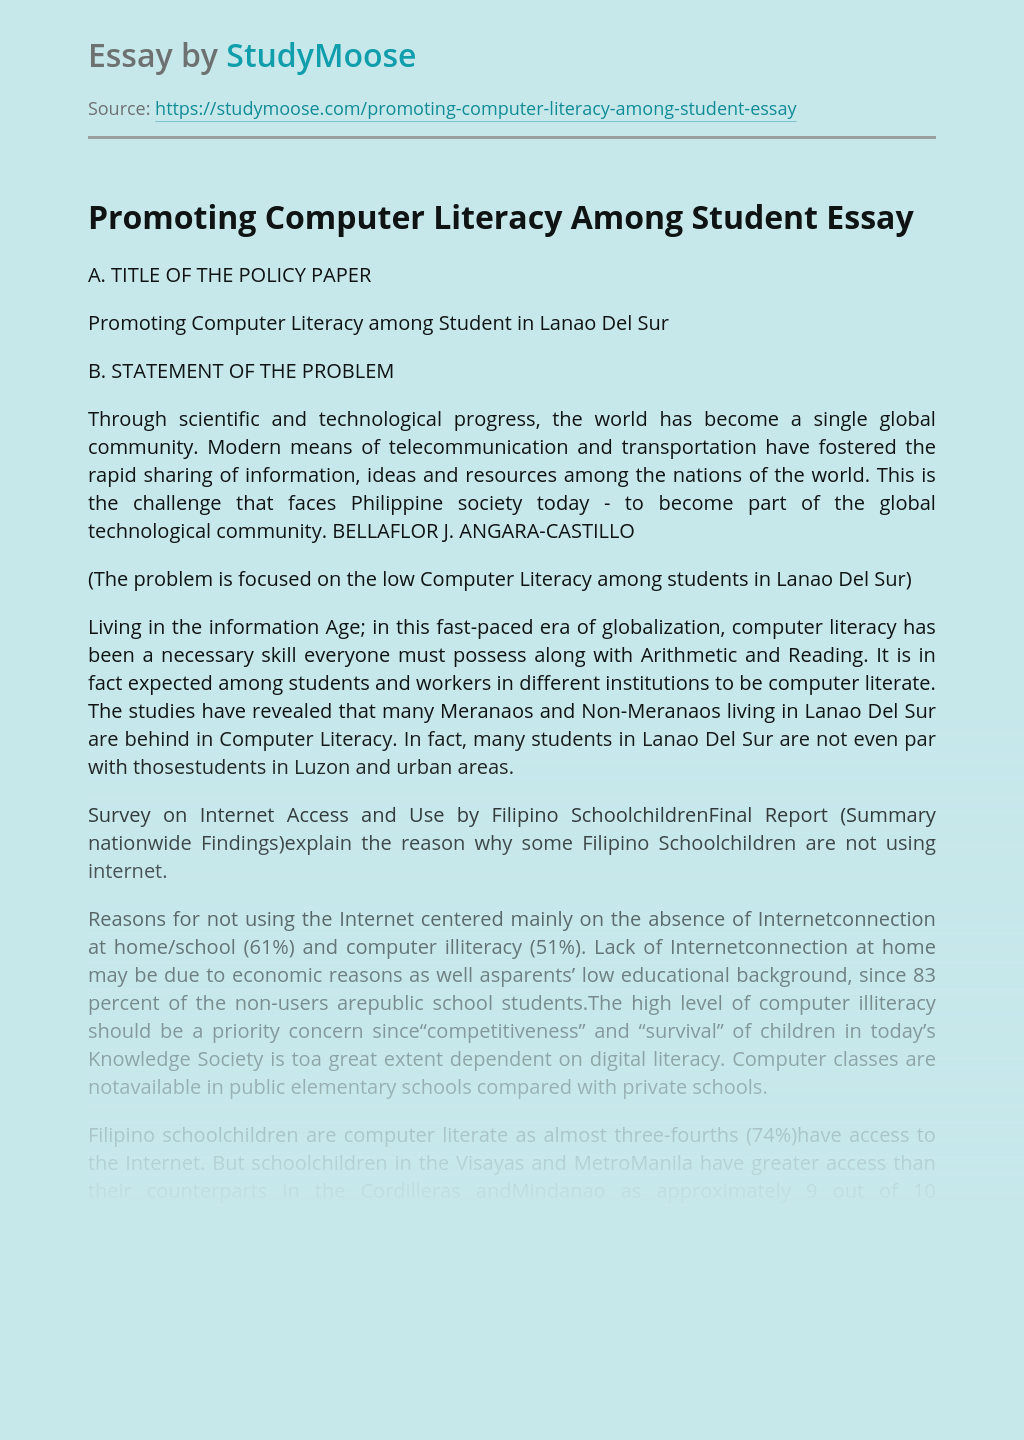 Promoting Computer Literacy Among Student